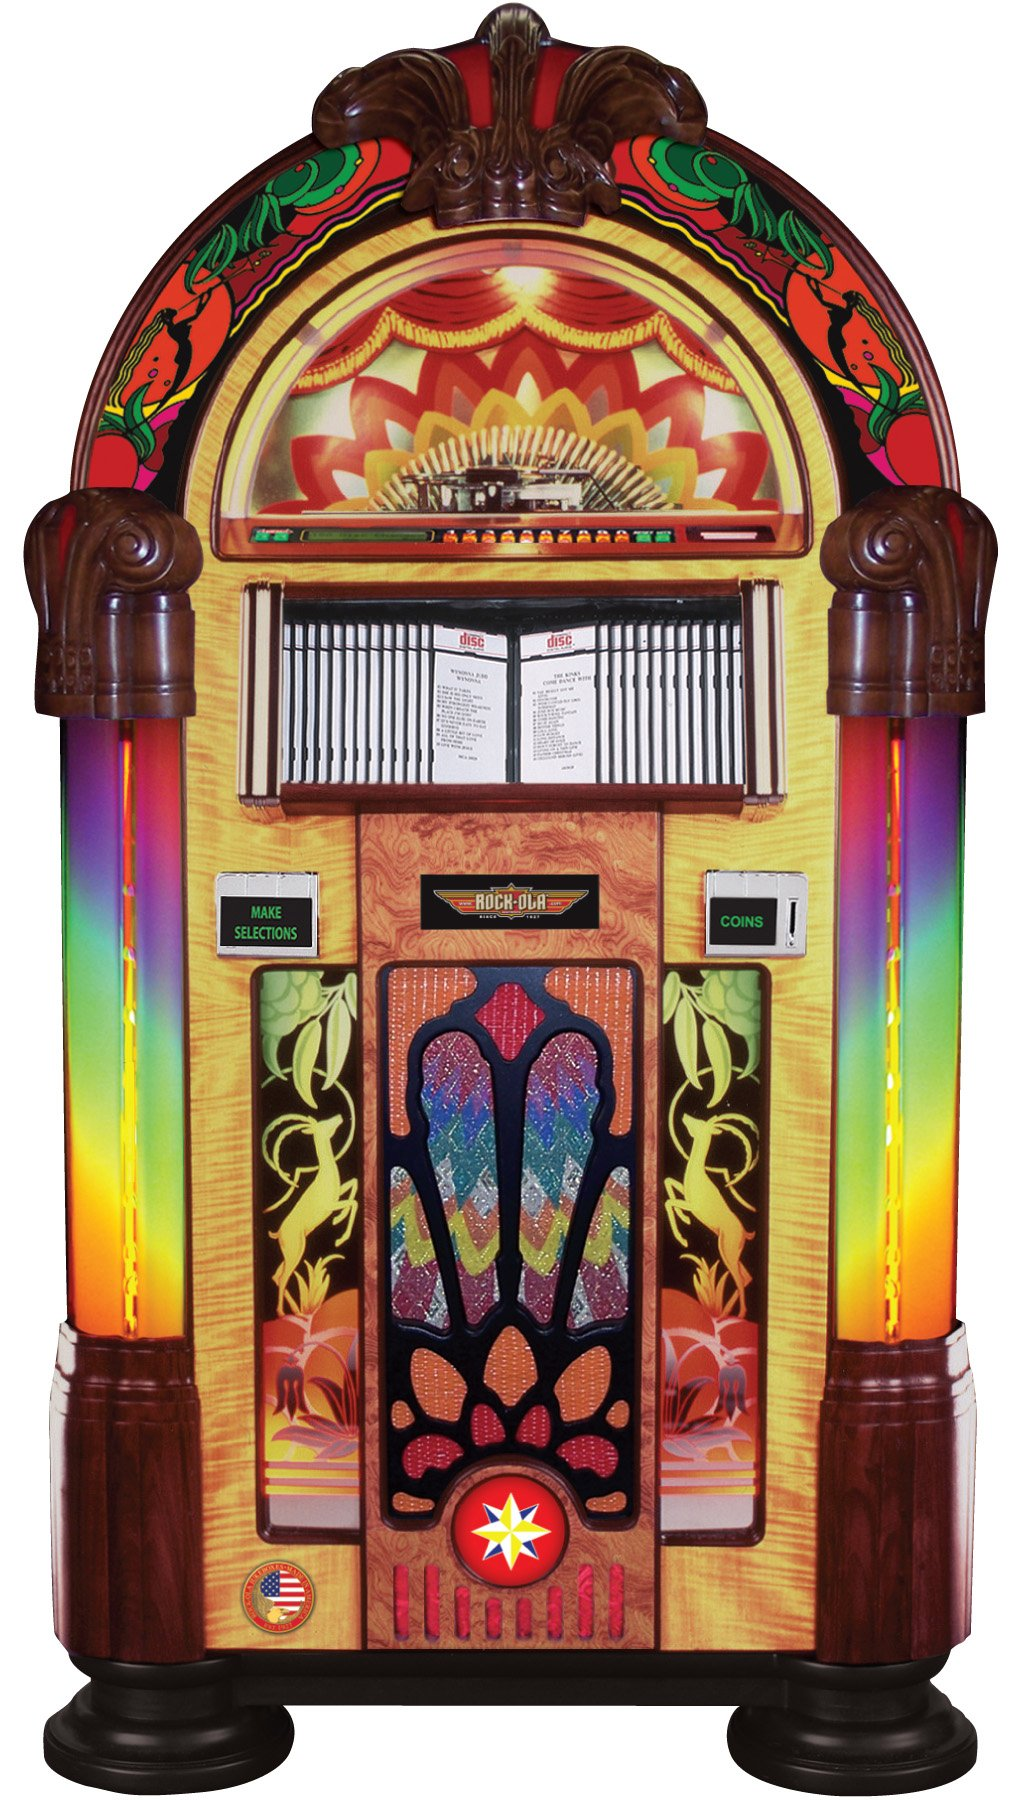 Rock-Ola Bubbler Gazelle CD Jukebox